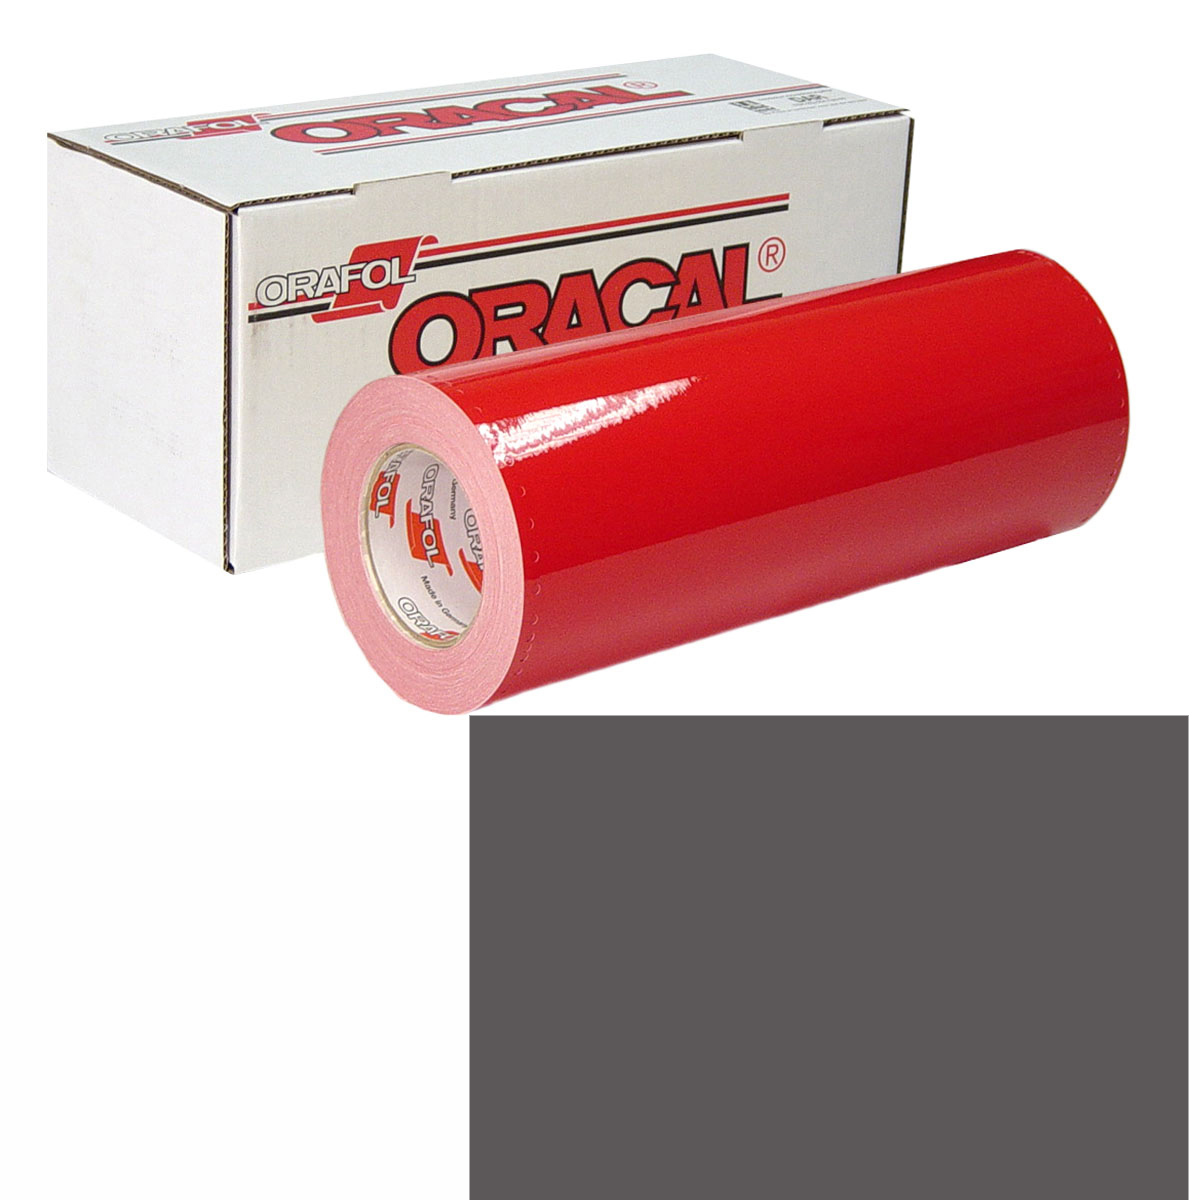 ORACAL 951M 30In X 50Yd 932 Graphite Met